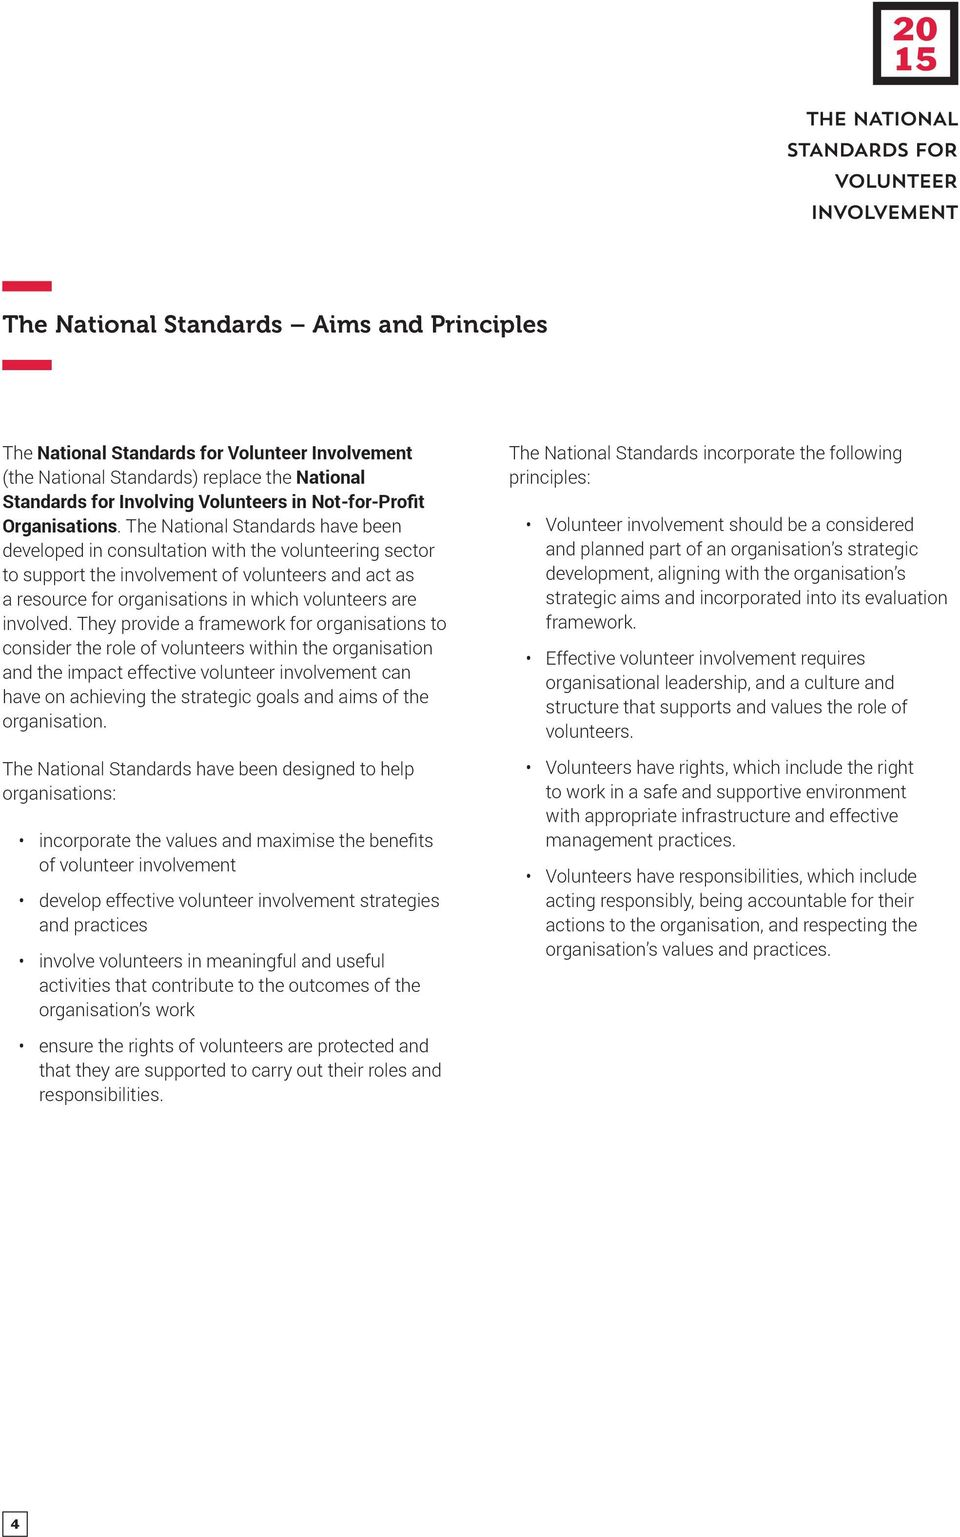 The National Standards have been developed in consultation with the volunteering sector to support the involvement of volunteers and act as a resource for organisations in which volunteers are